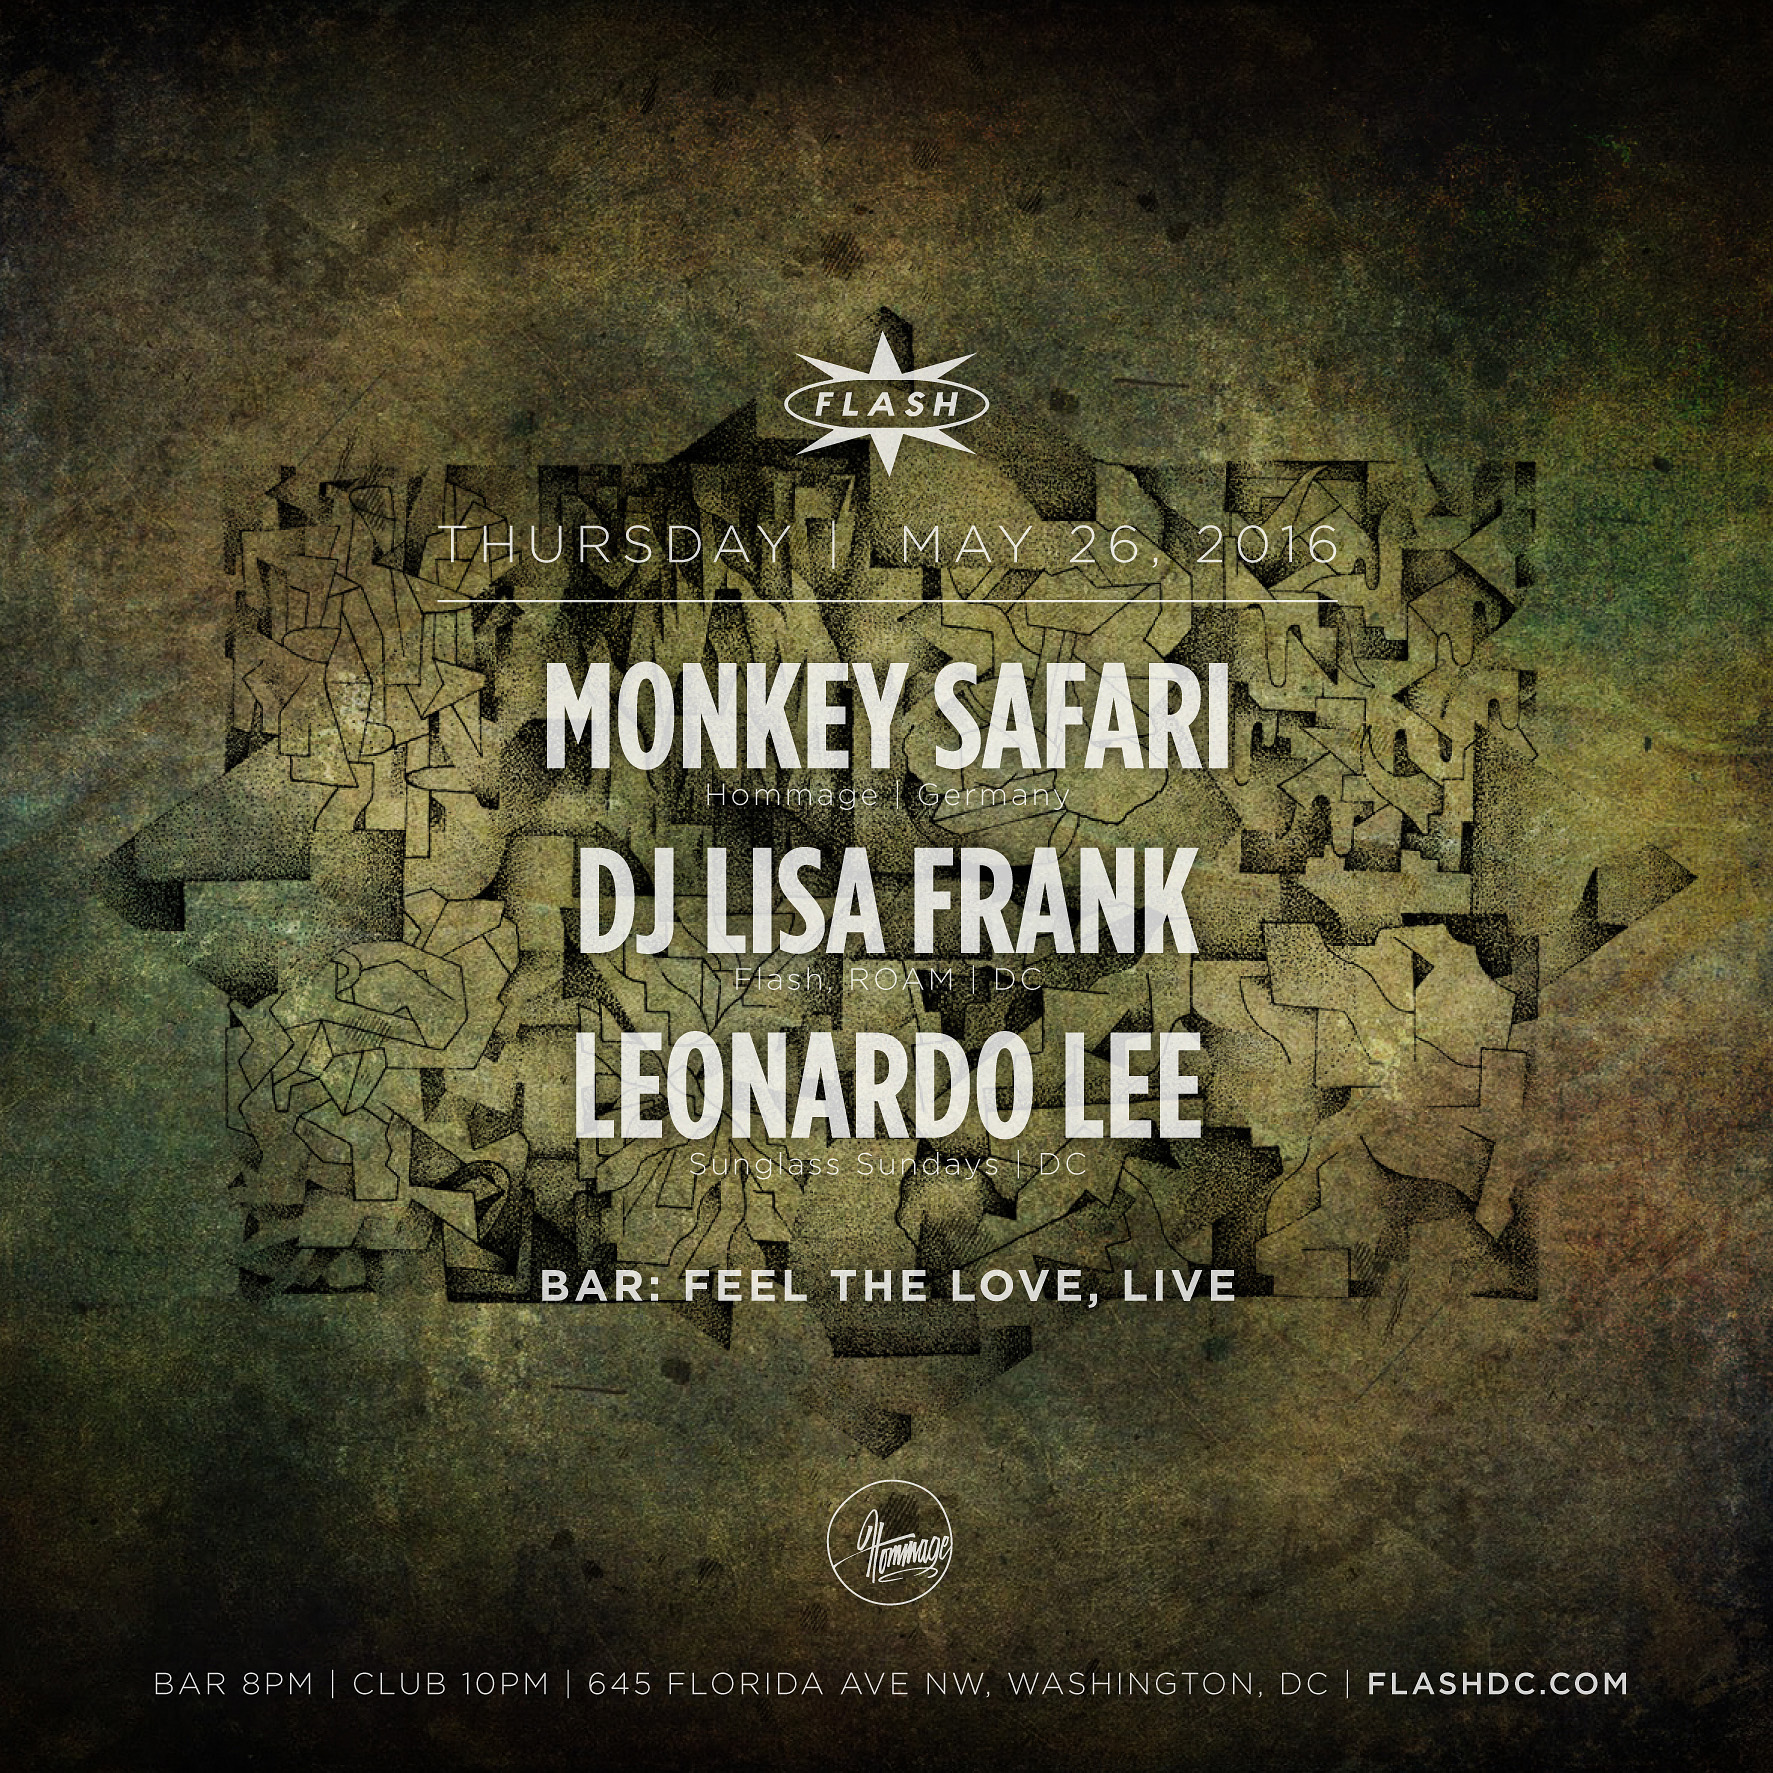 Monkey Safari at Flash on Thursday, May 26, 2016